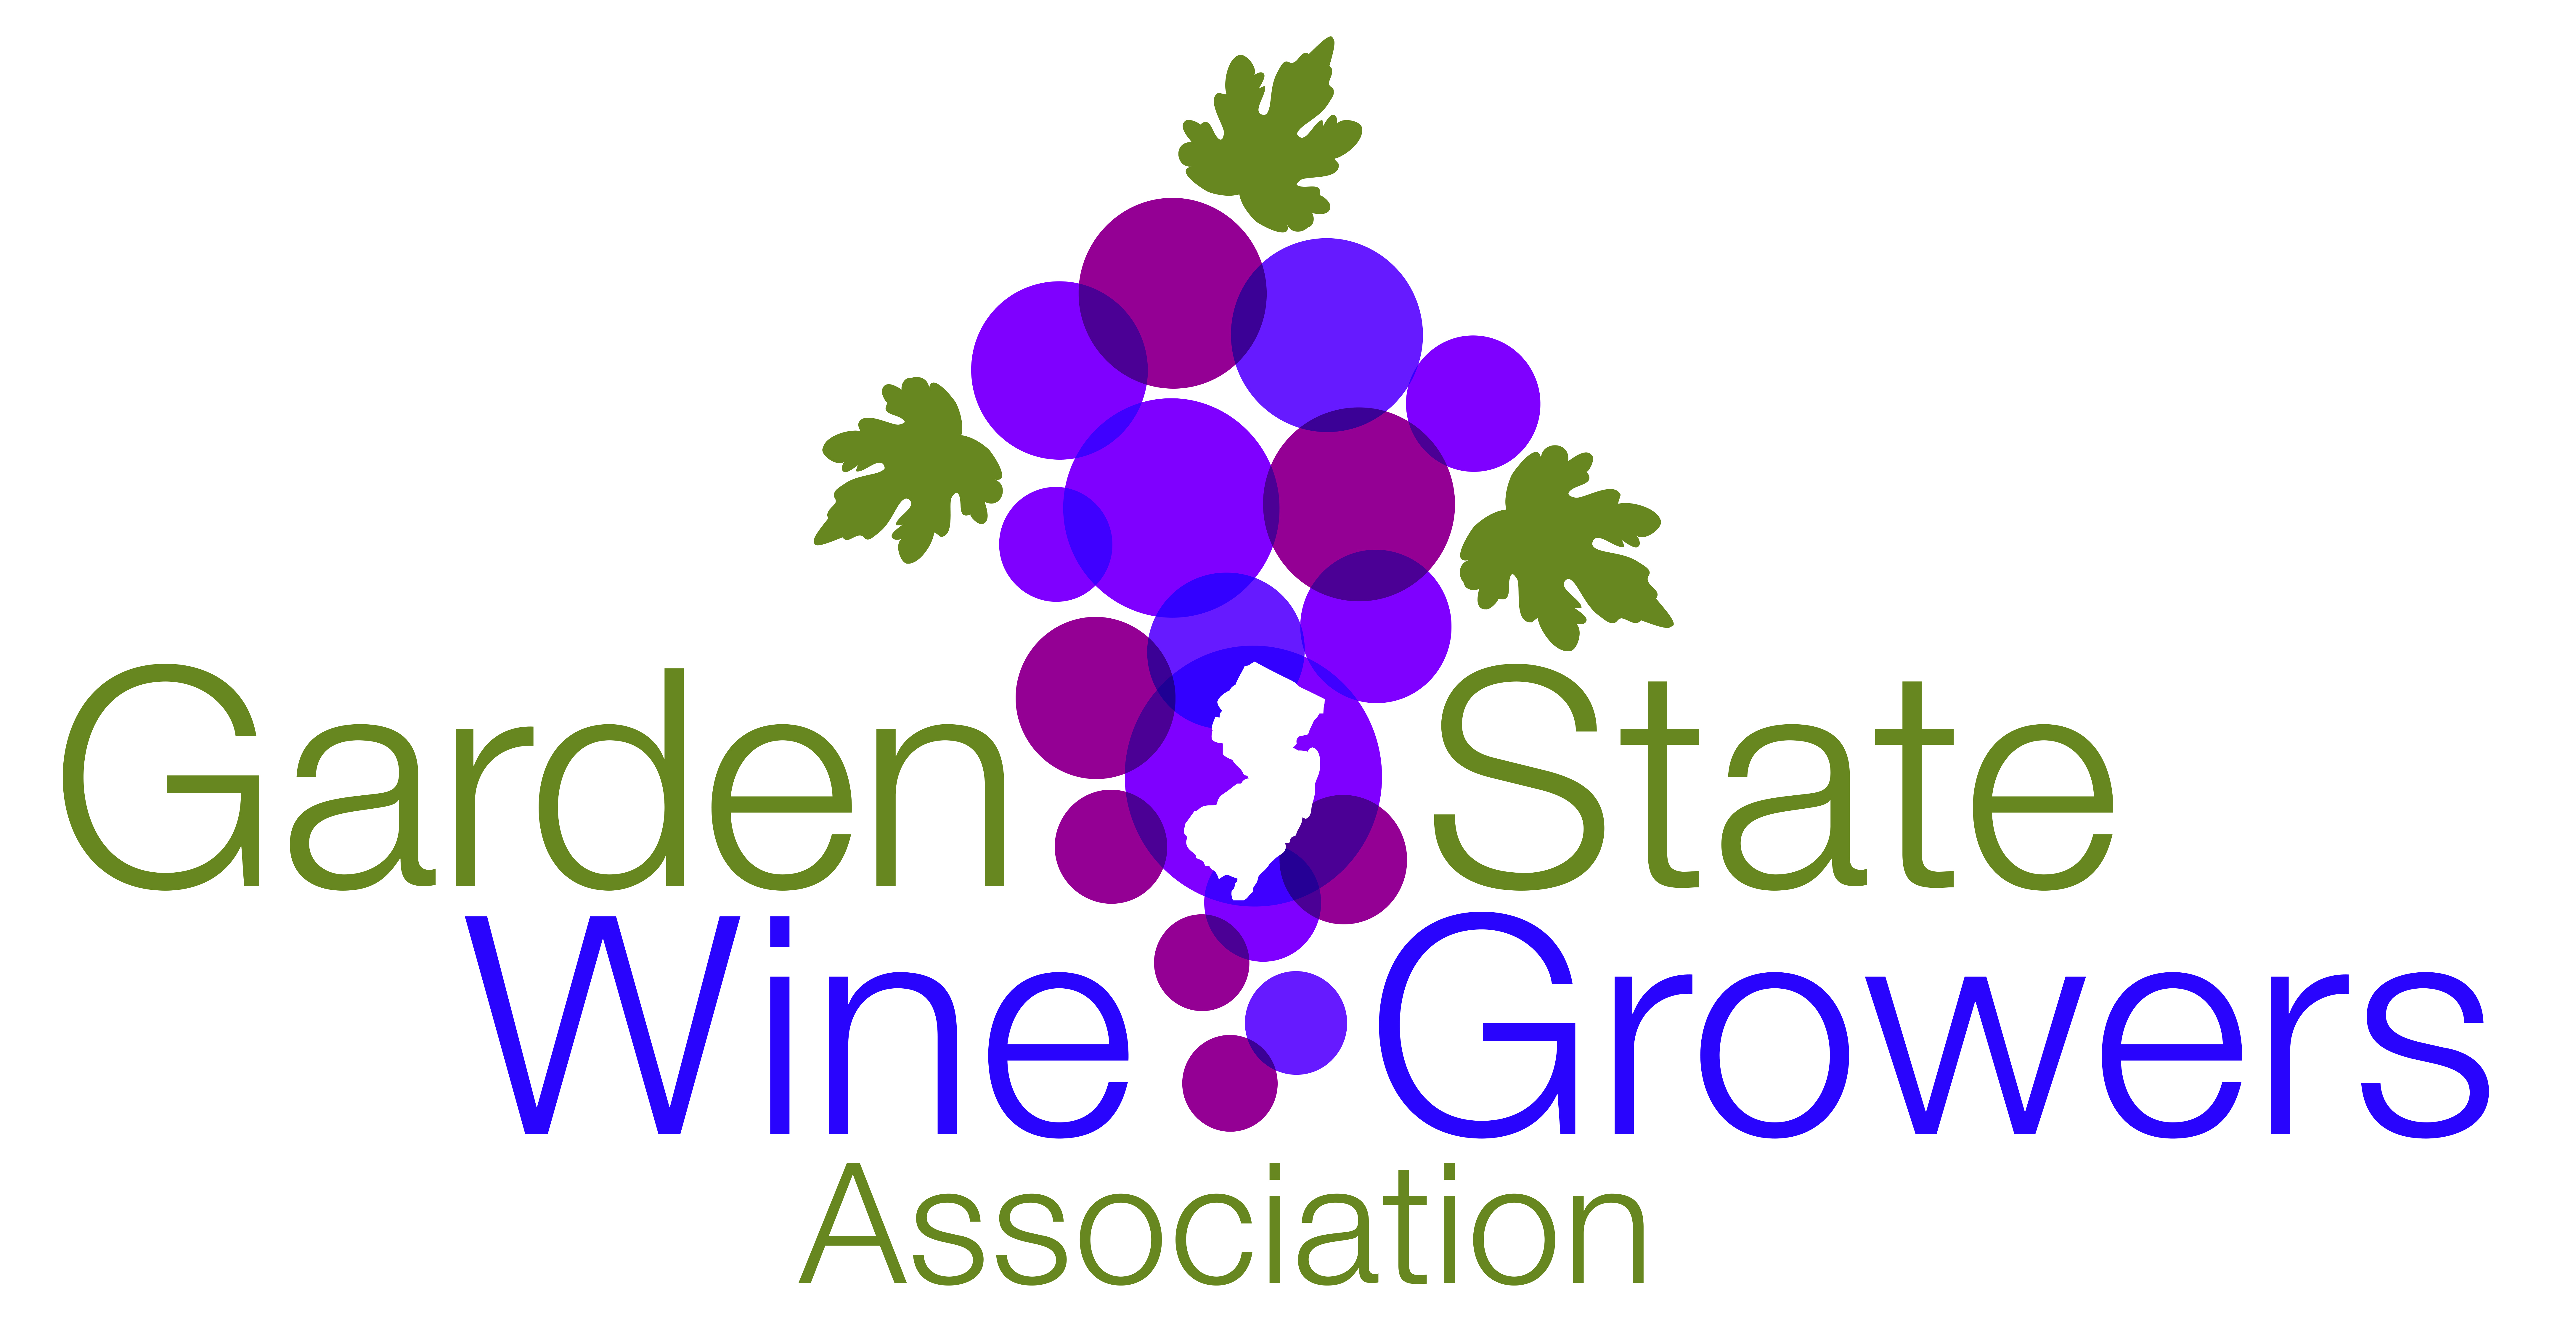 Garden state physical therapy - Garden State Wine Growers Association